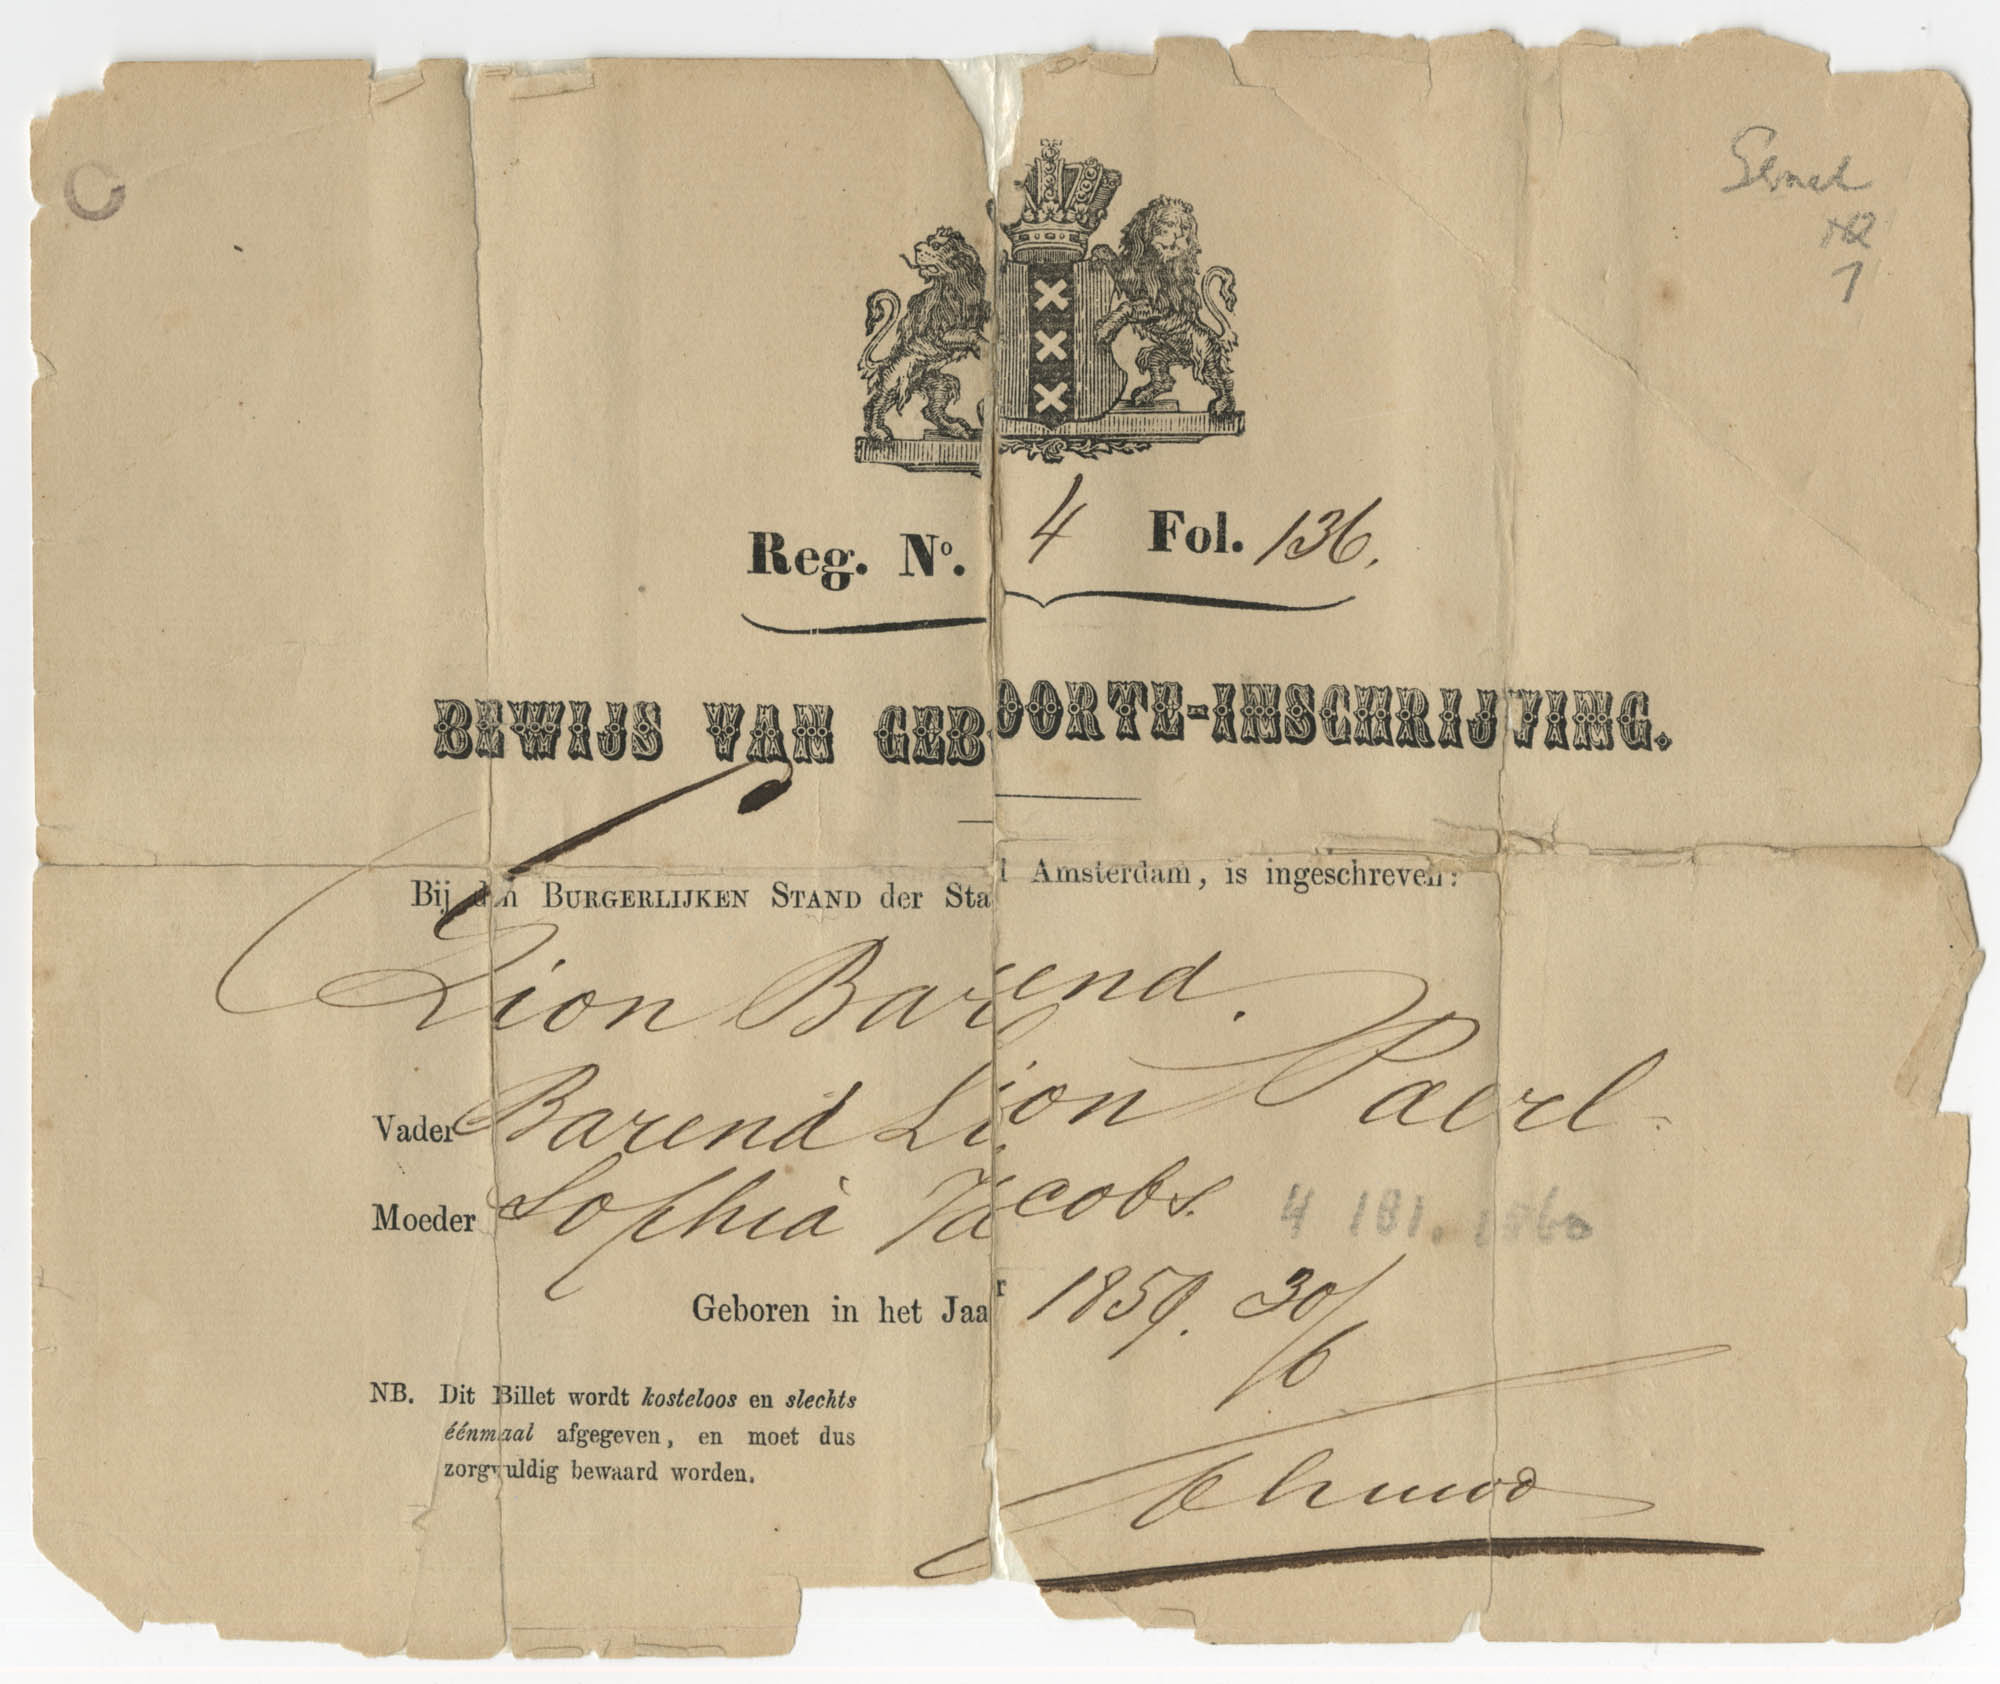 Lion Barend Paerl birth certificate, 1859